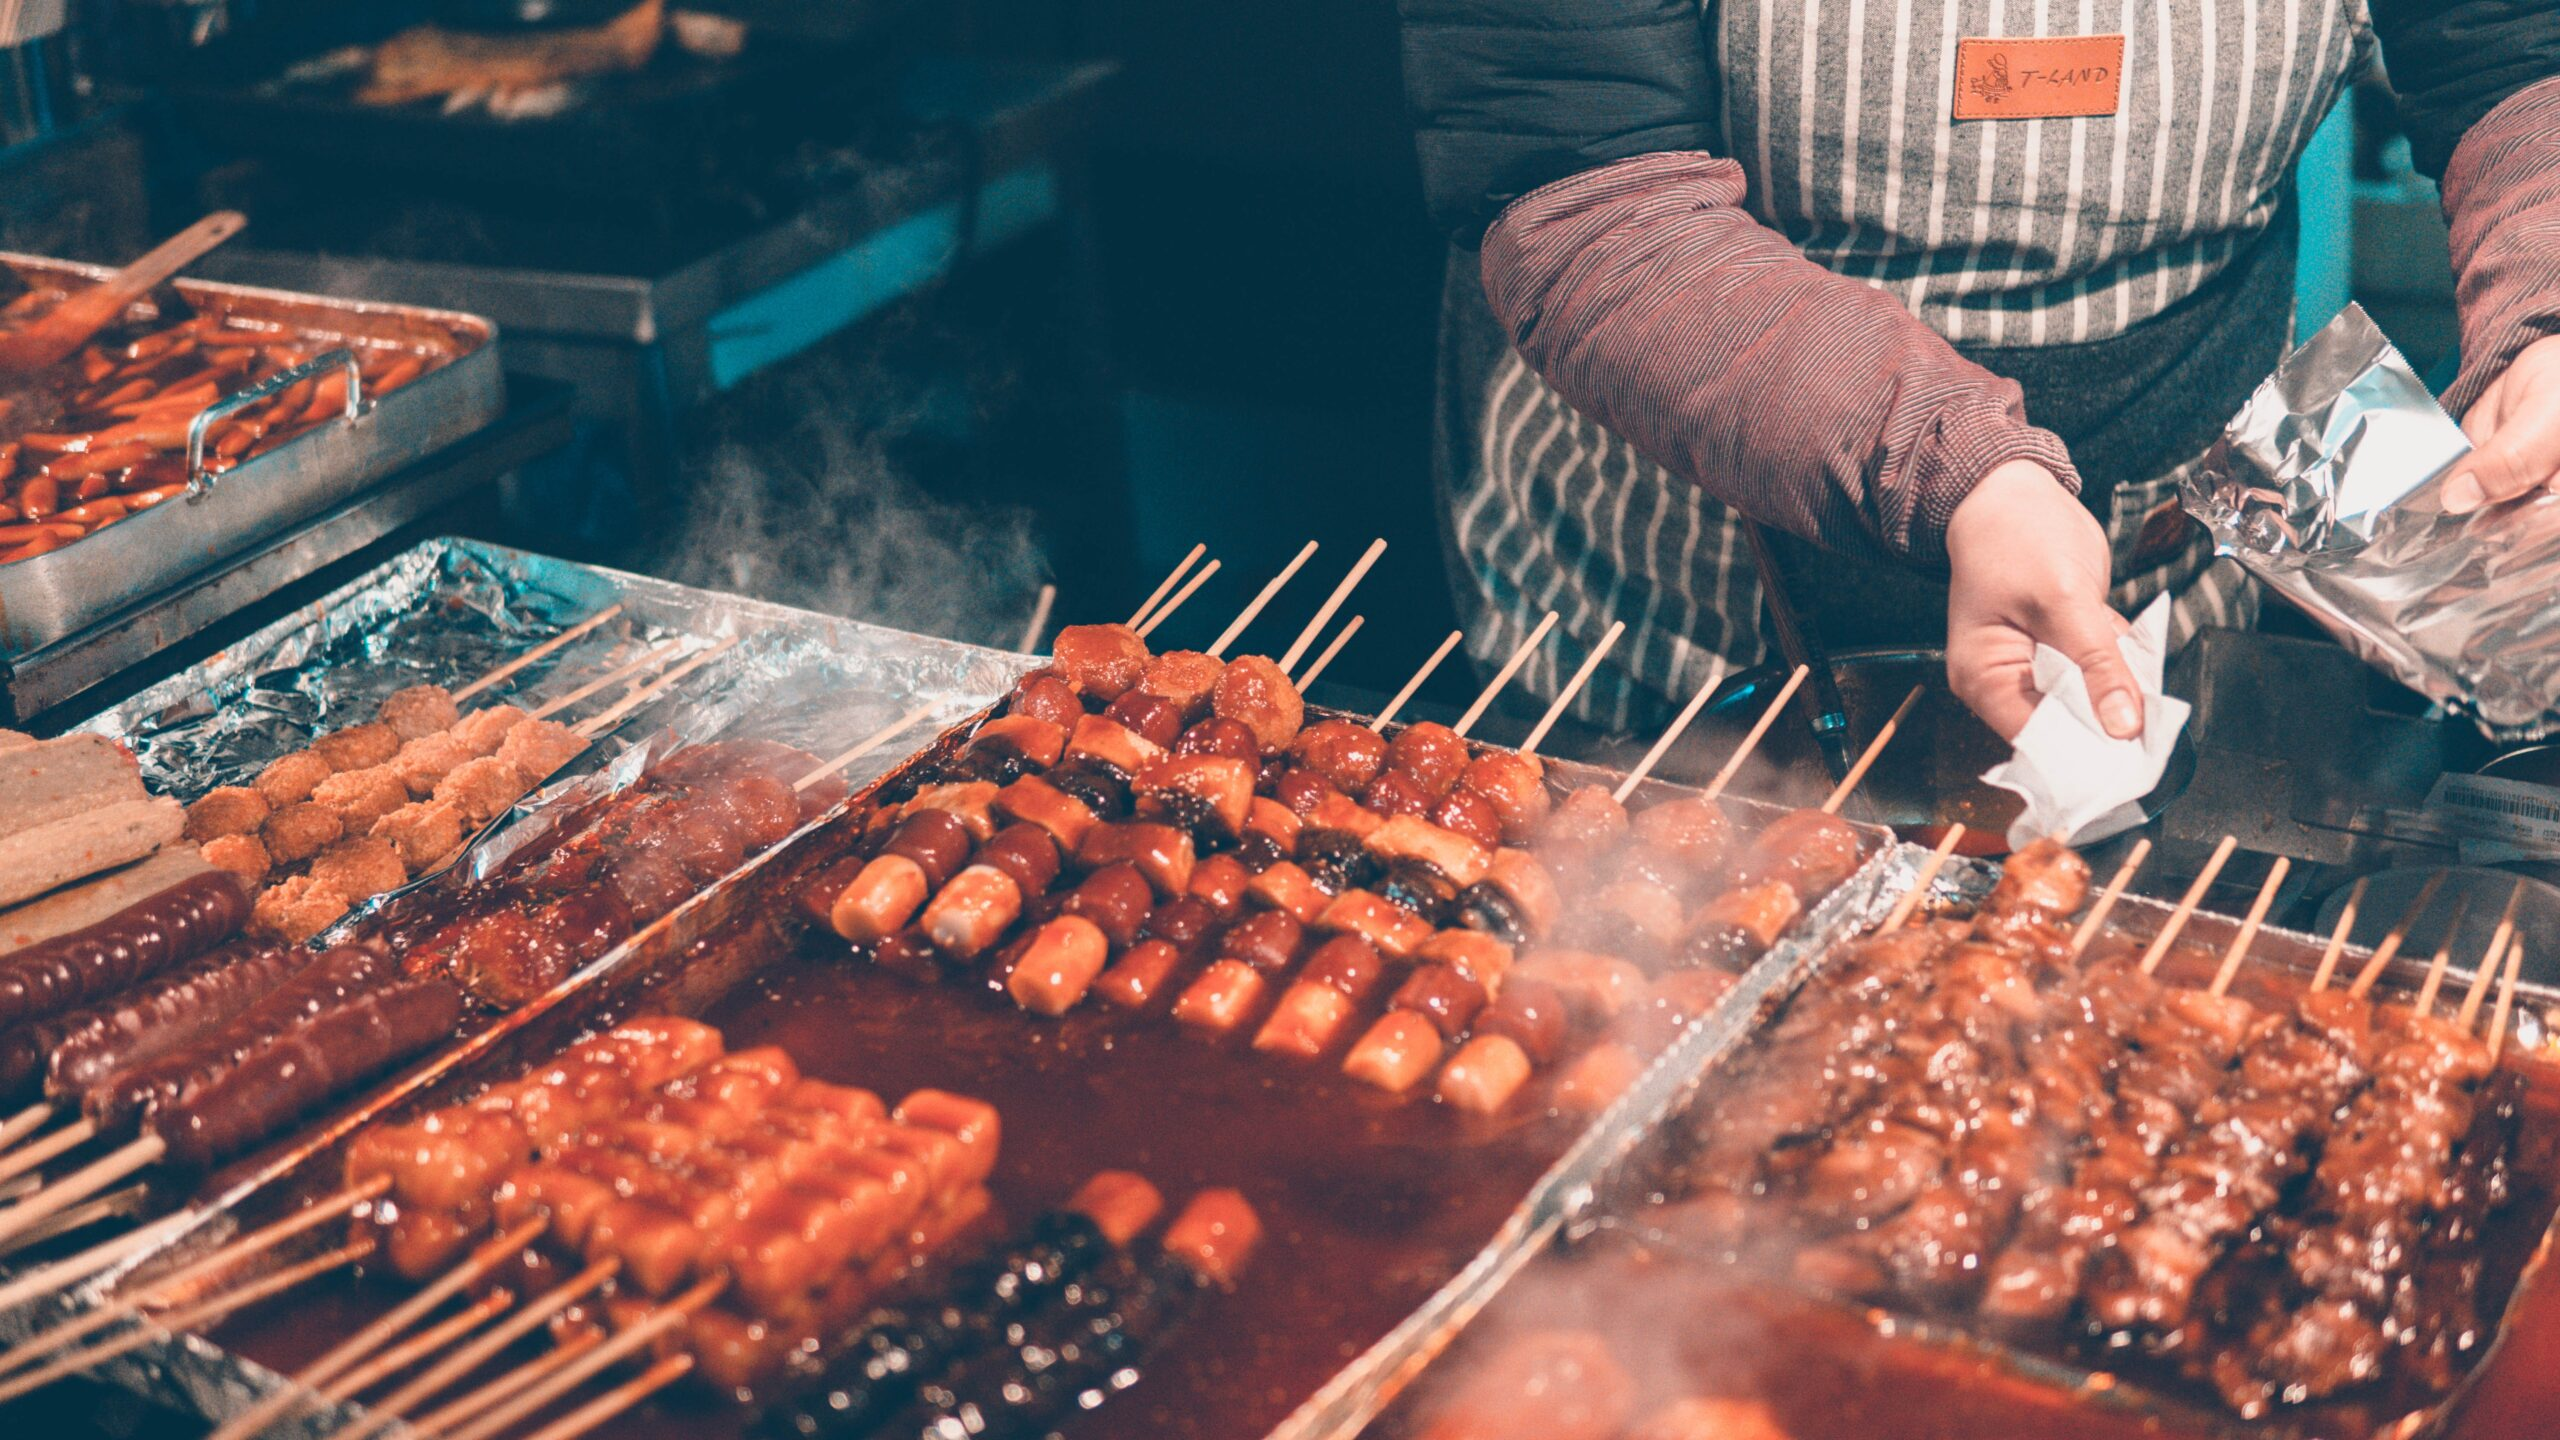 The Best Street Food Is On Our Catania Street Food Evening Tour